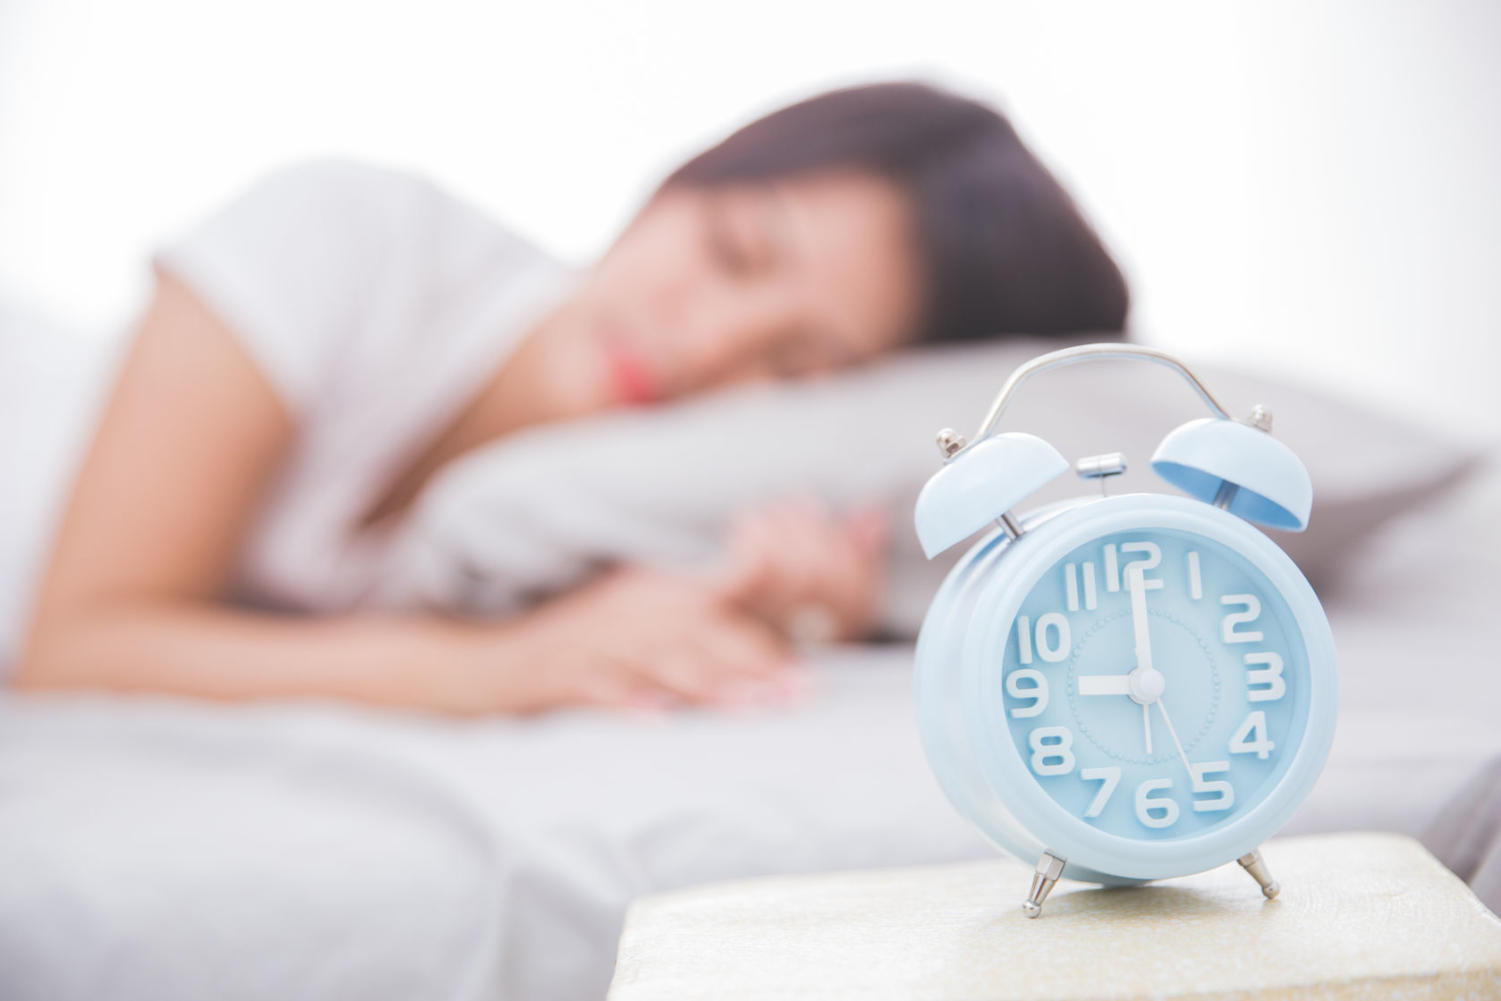 48377023 - alarm clock close up with woman sleeping peacefully on a bed on the back